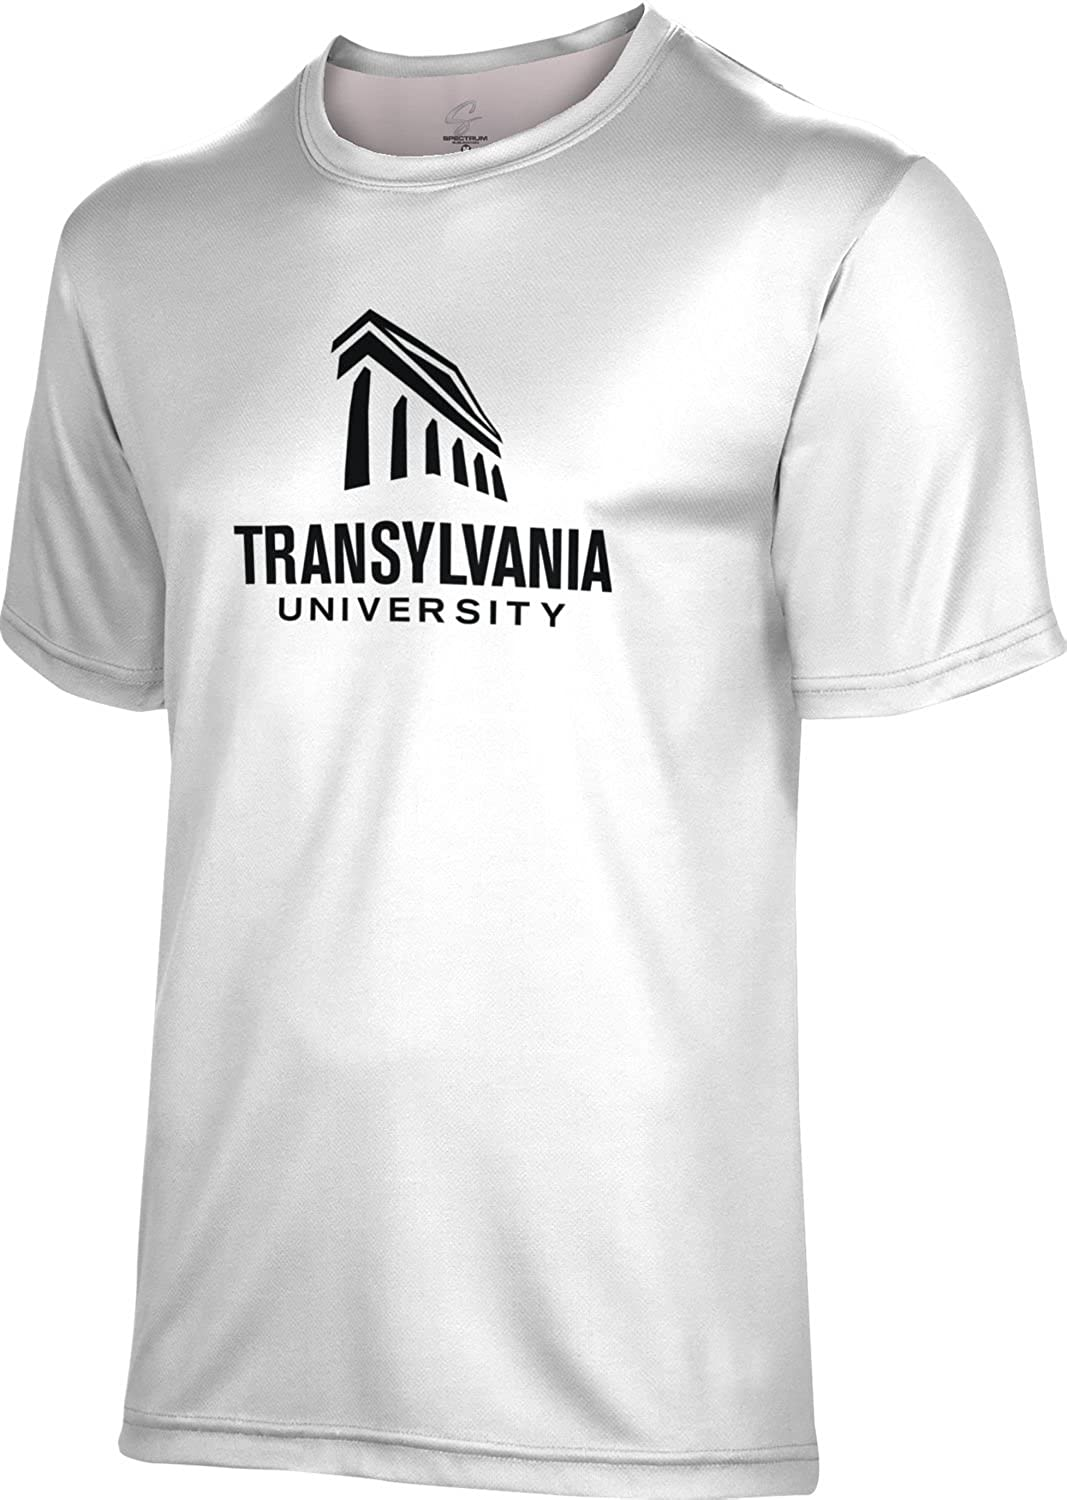 Spectrum Sublimation Transylvania University Unisex Poly Cotton Tee